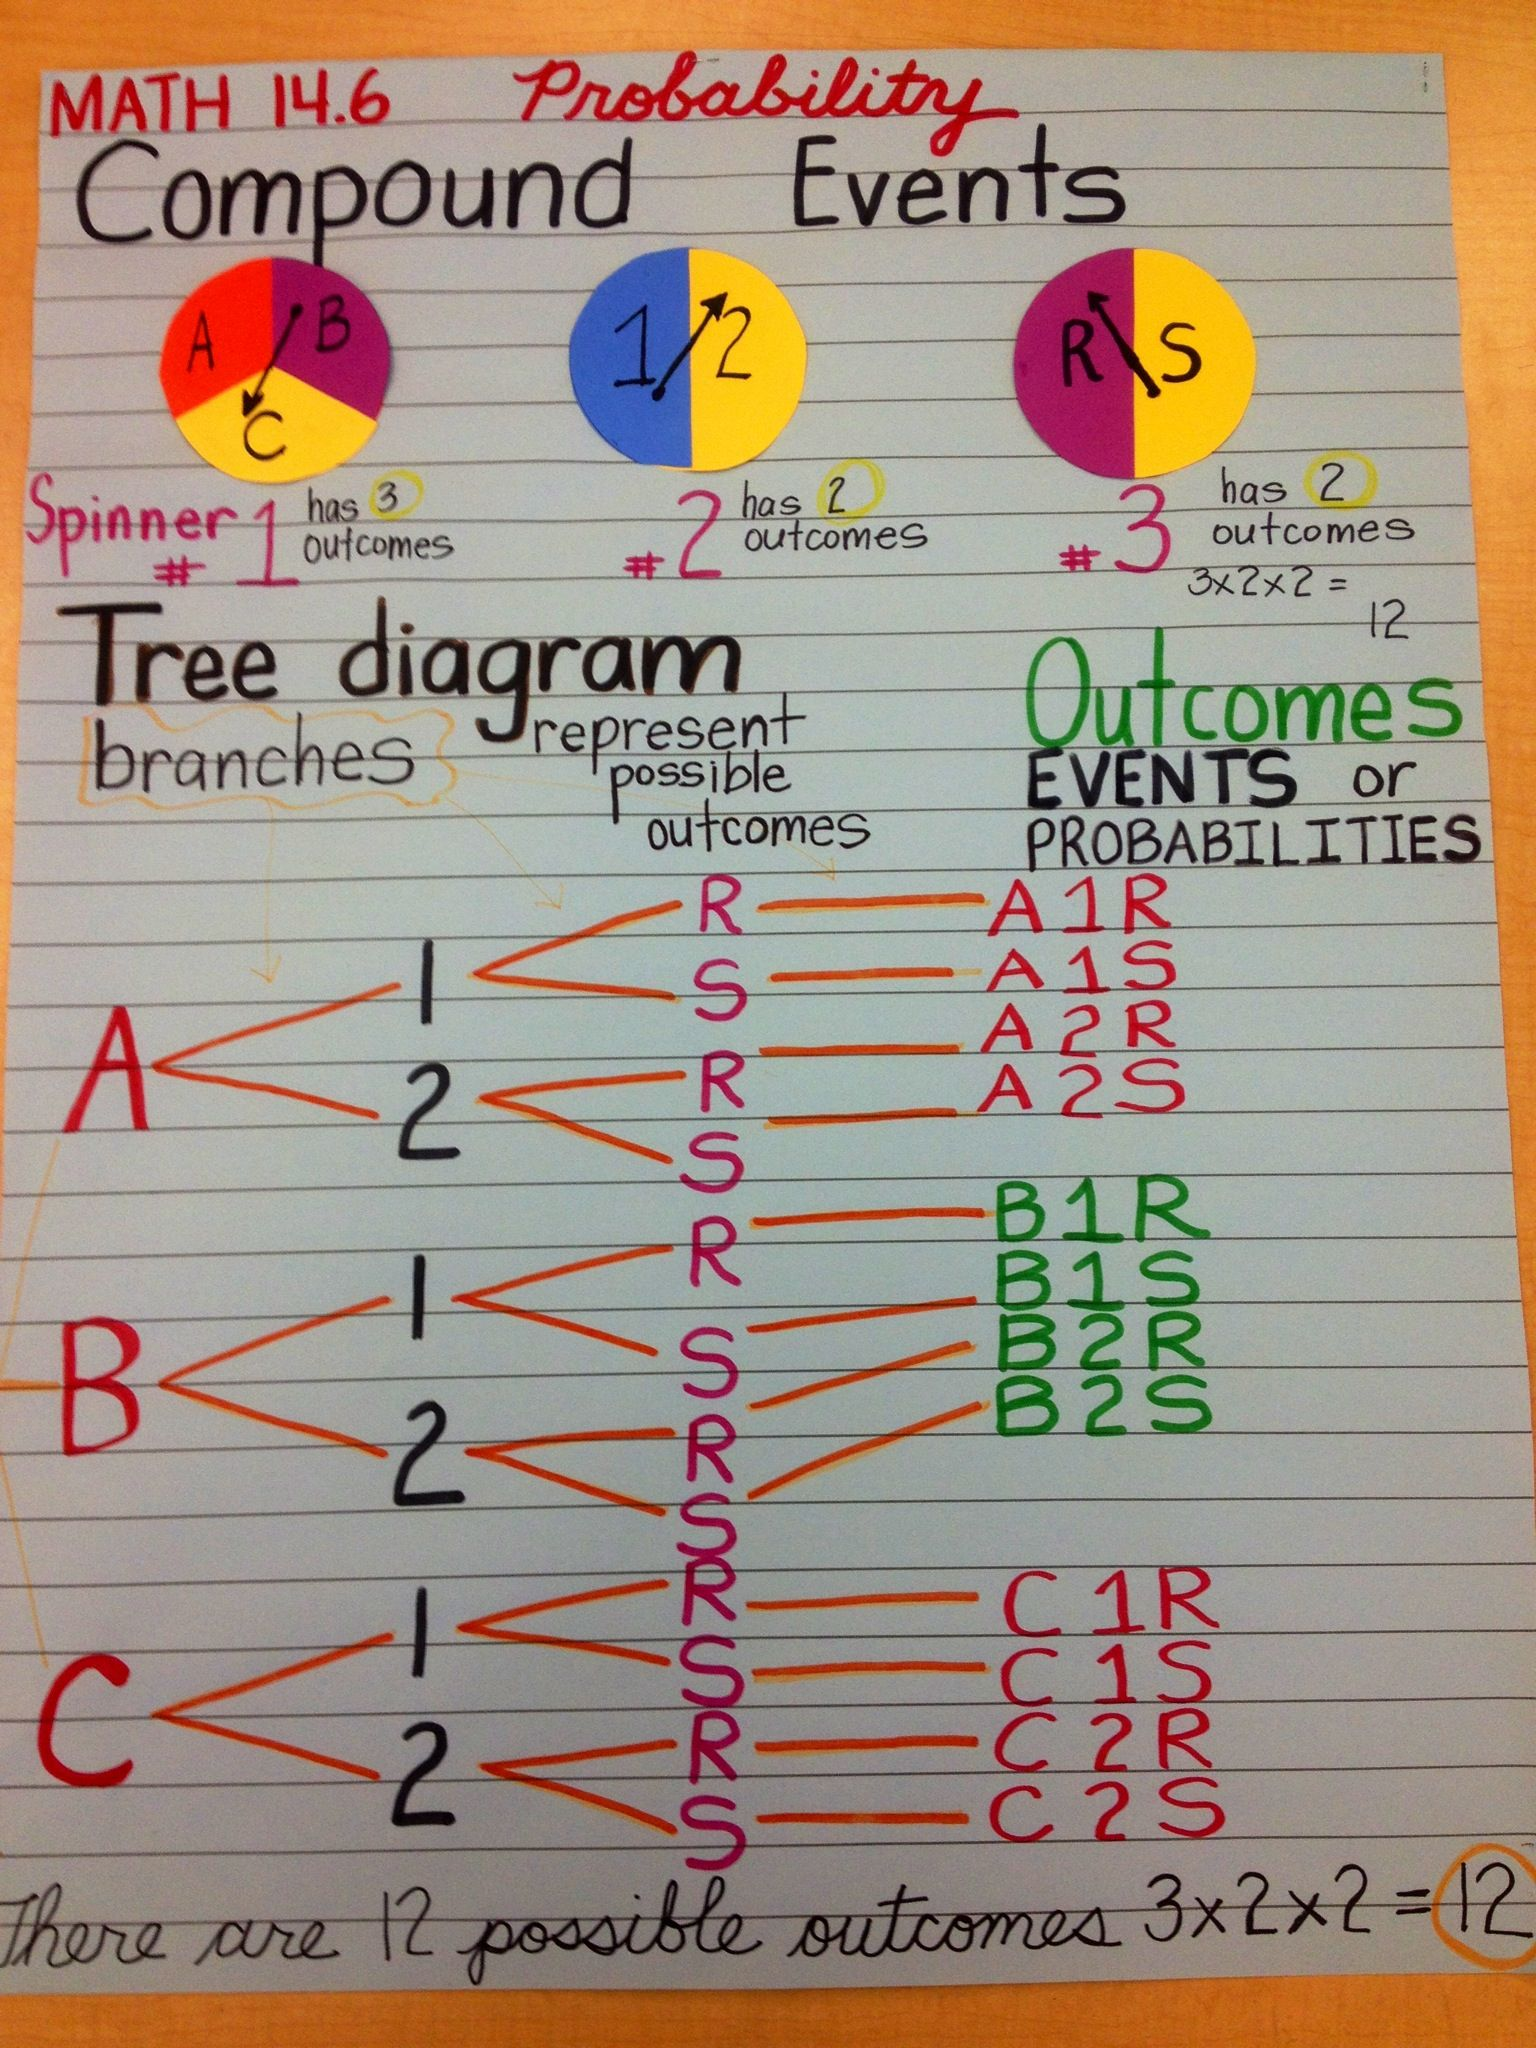 Probablity compound events hot journal higher order thinking probablity compound events hot journal higher order thinking tree diagrammath ccuart Image collections